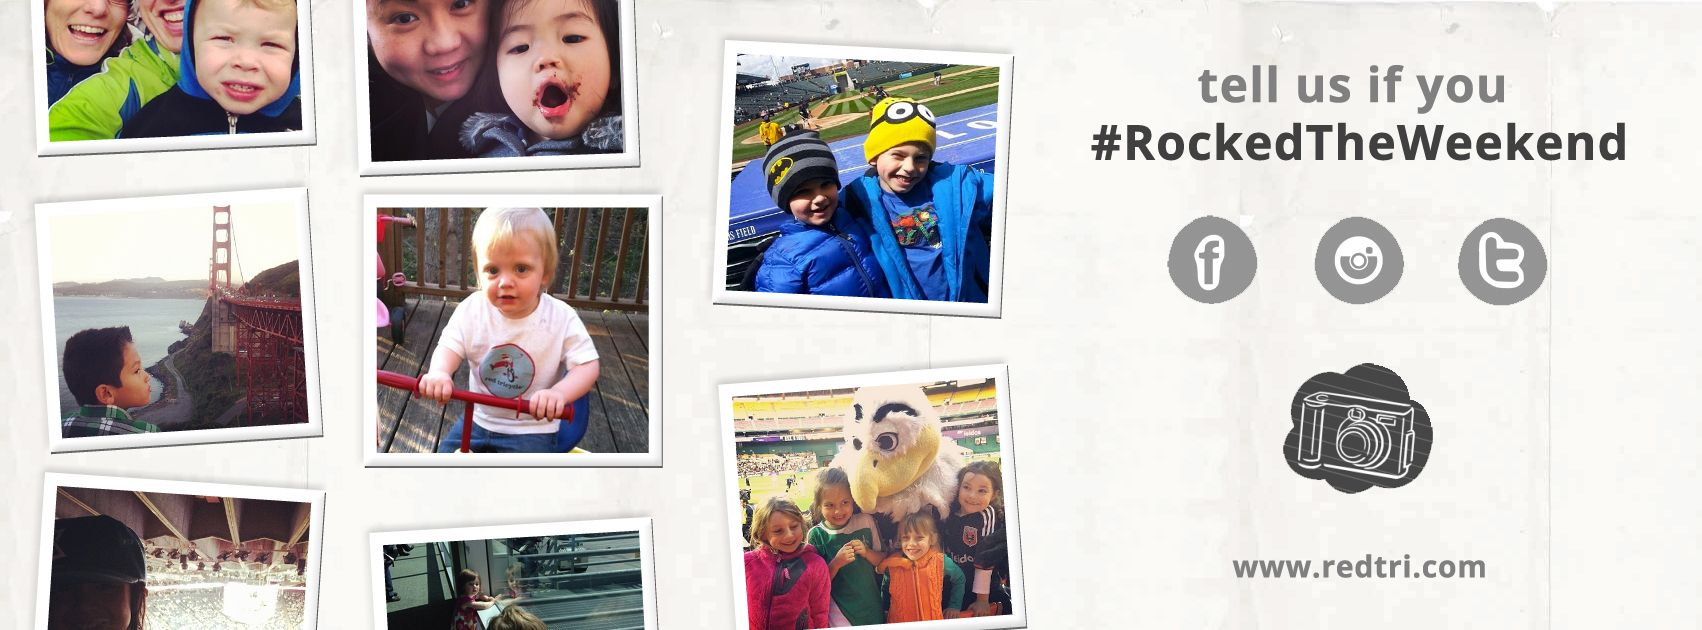 See Who #RockedTheWeekend (4/4-4/6)  http://redtri.co/1gJk92d  Want to join in the fun? Share your photos with us on Facebook, Instagram, or Twitter using the hashtag #rockedtheweekend.